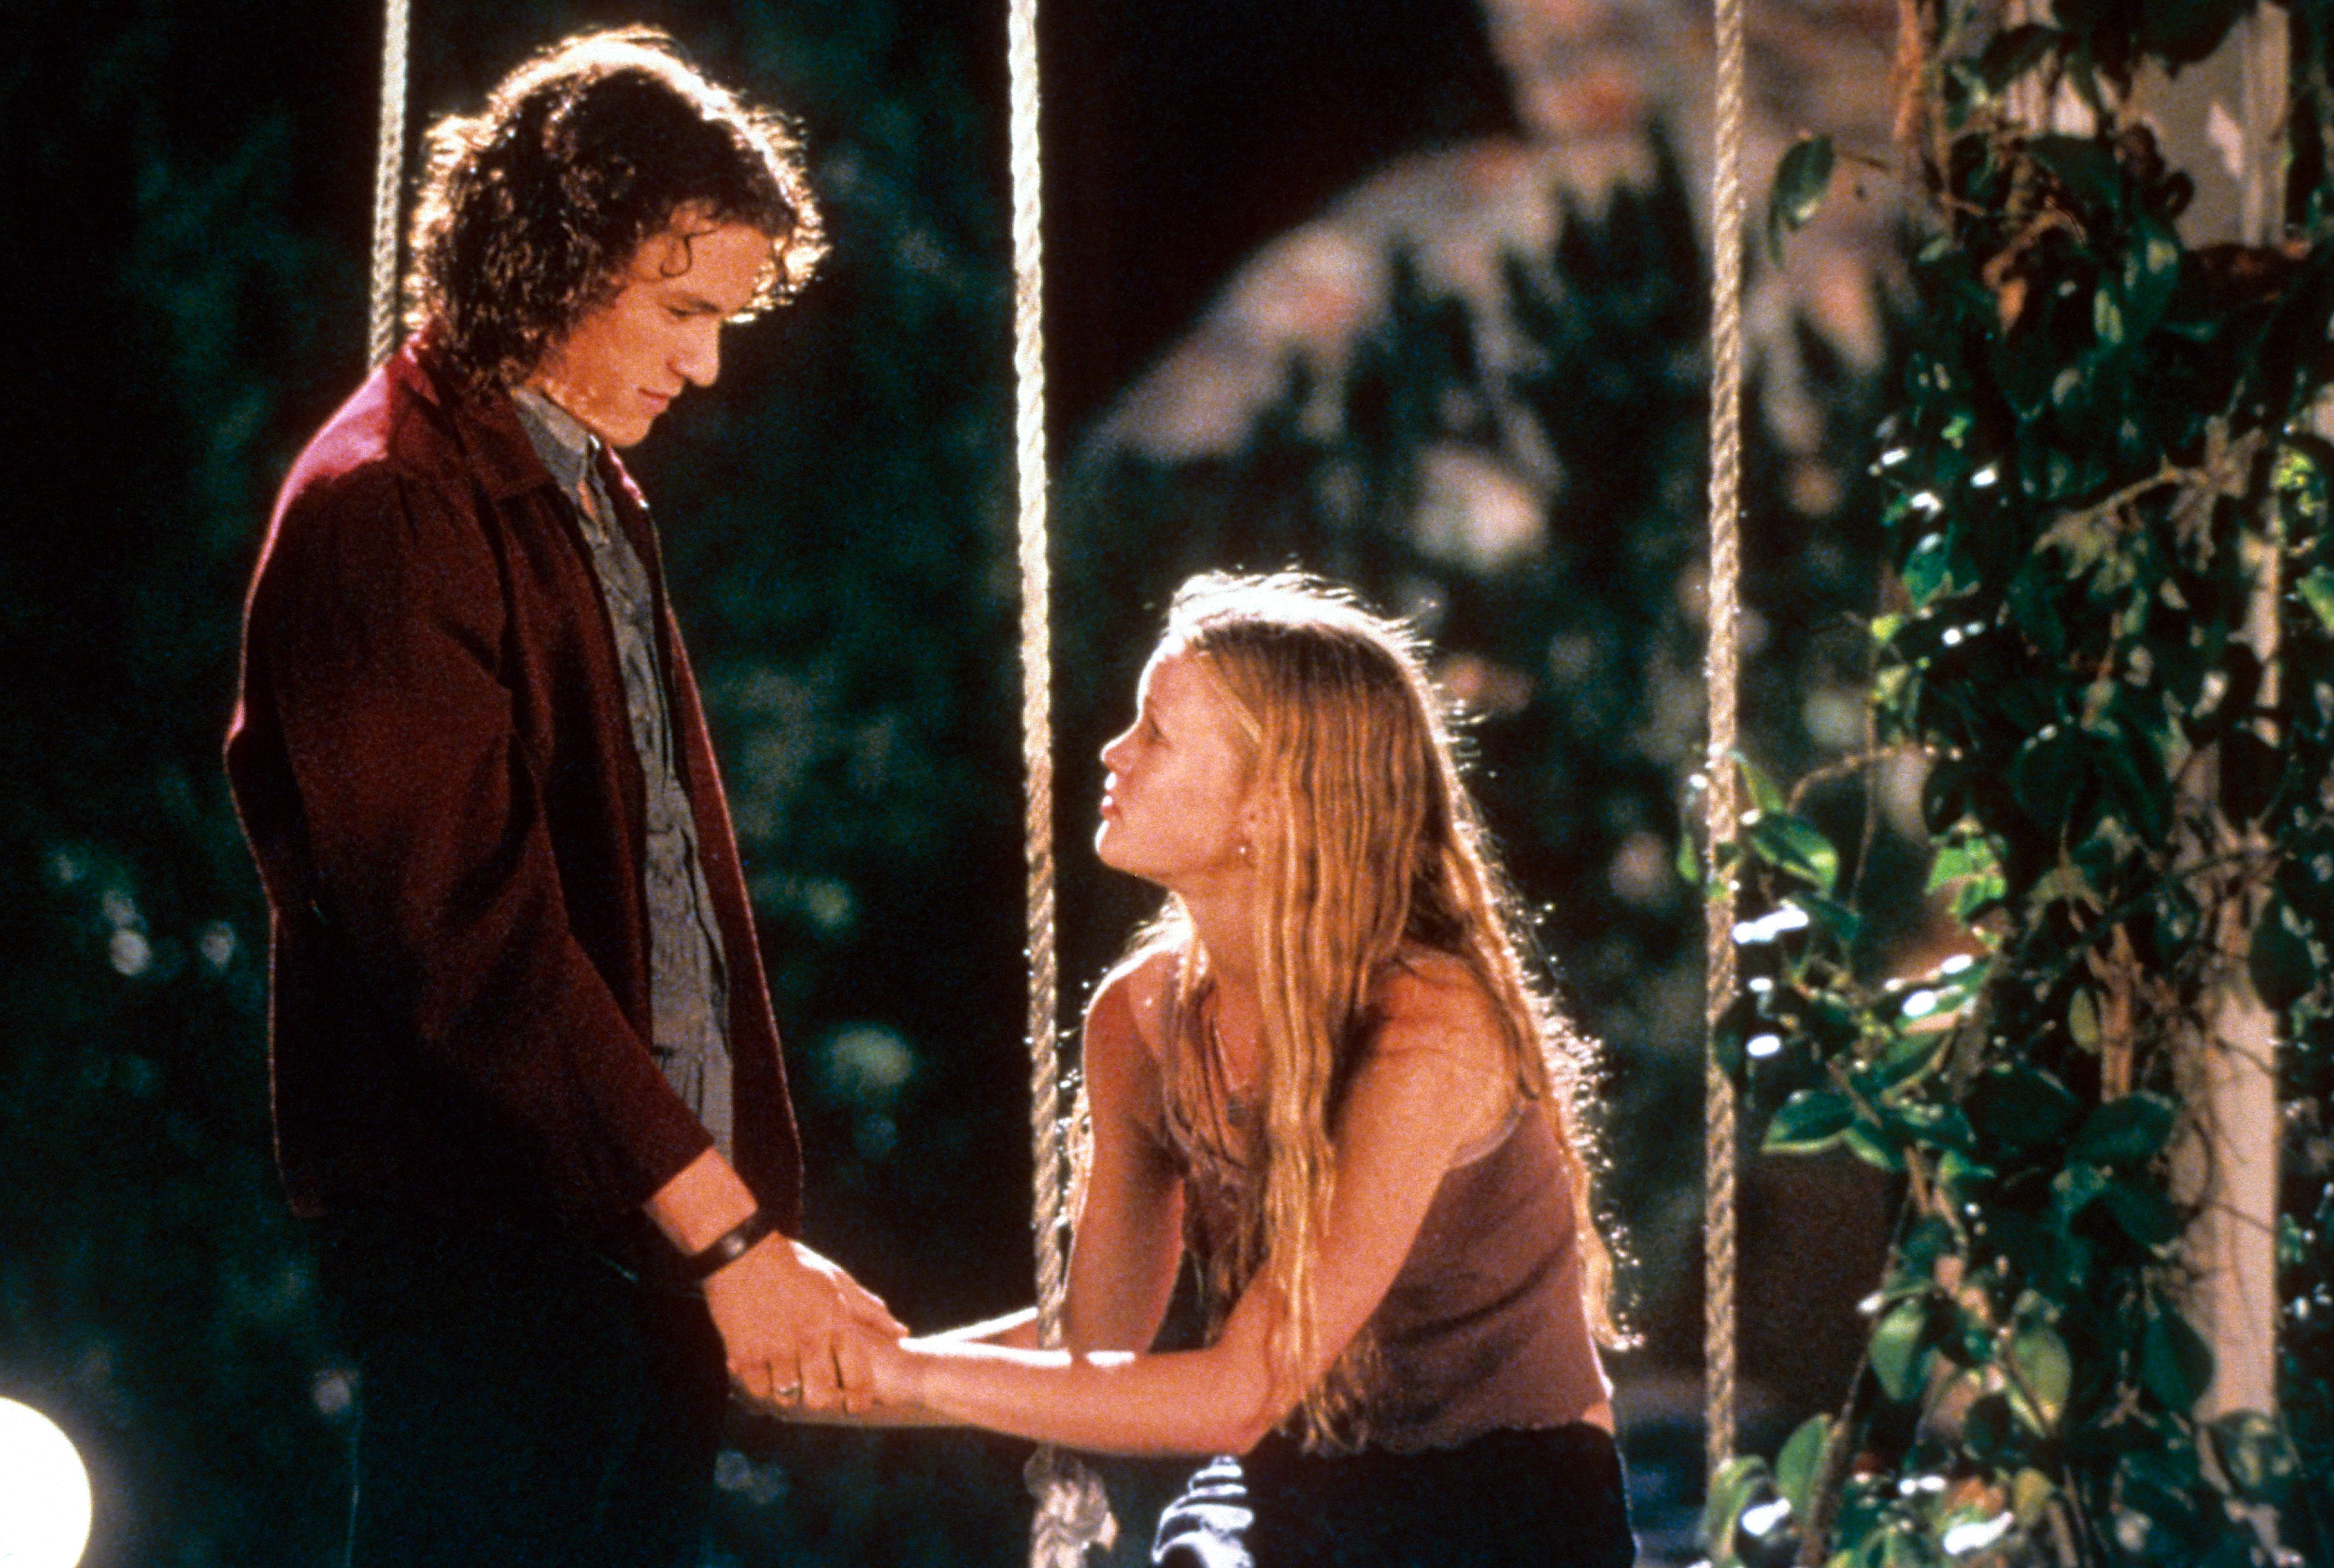 Heath Ledger and Julia Stiles in 10 things i hate about you